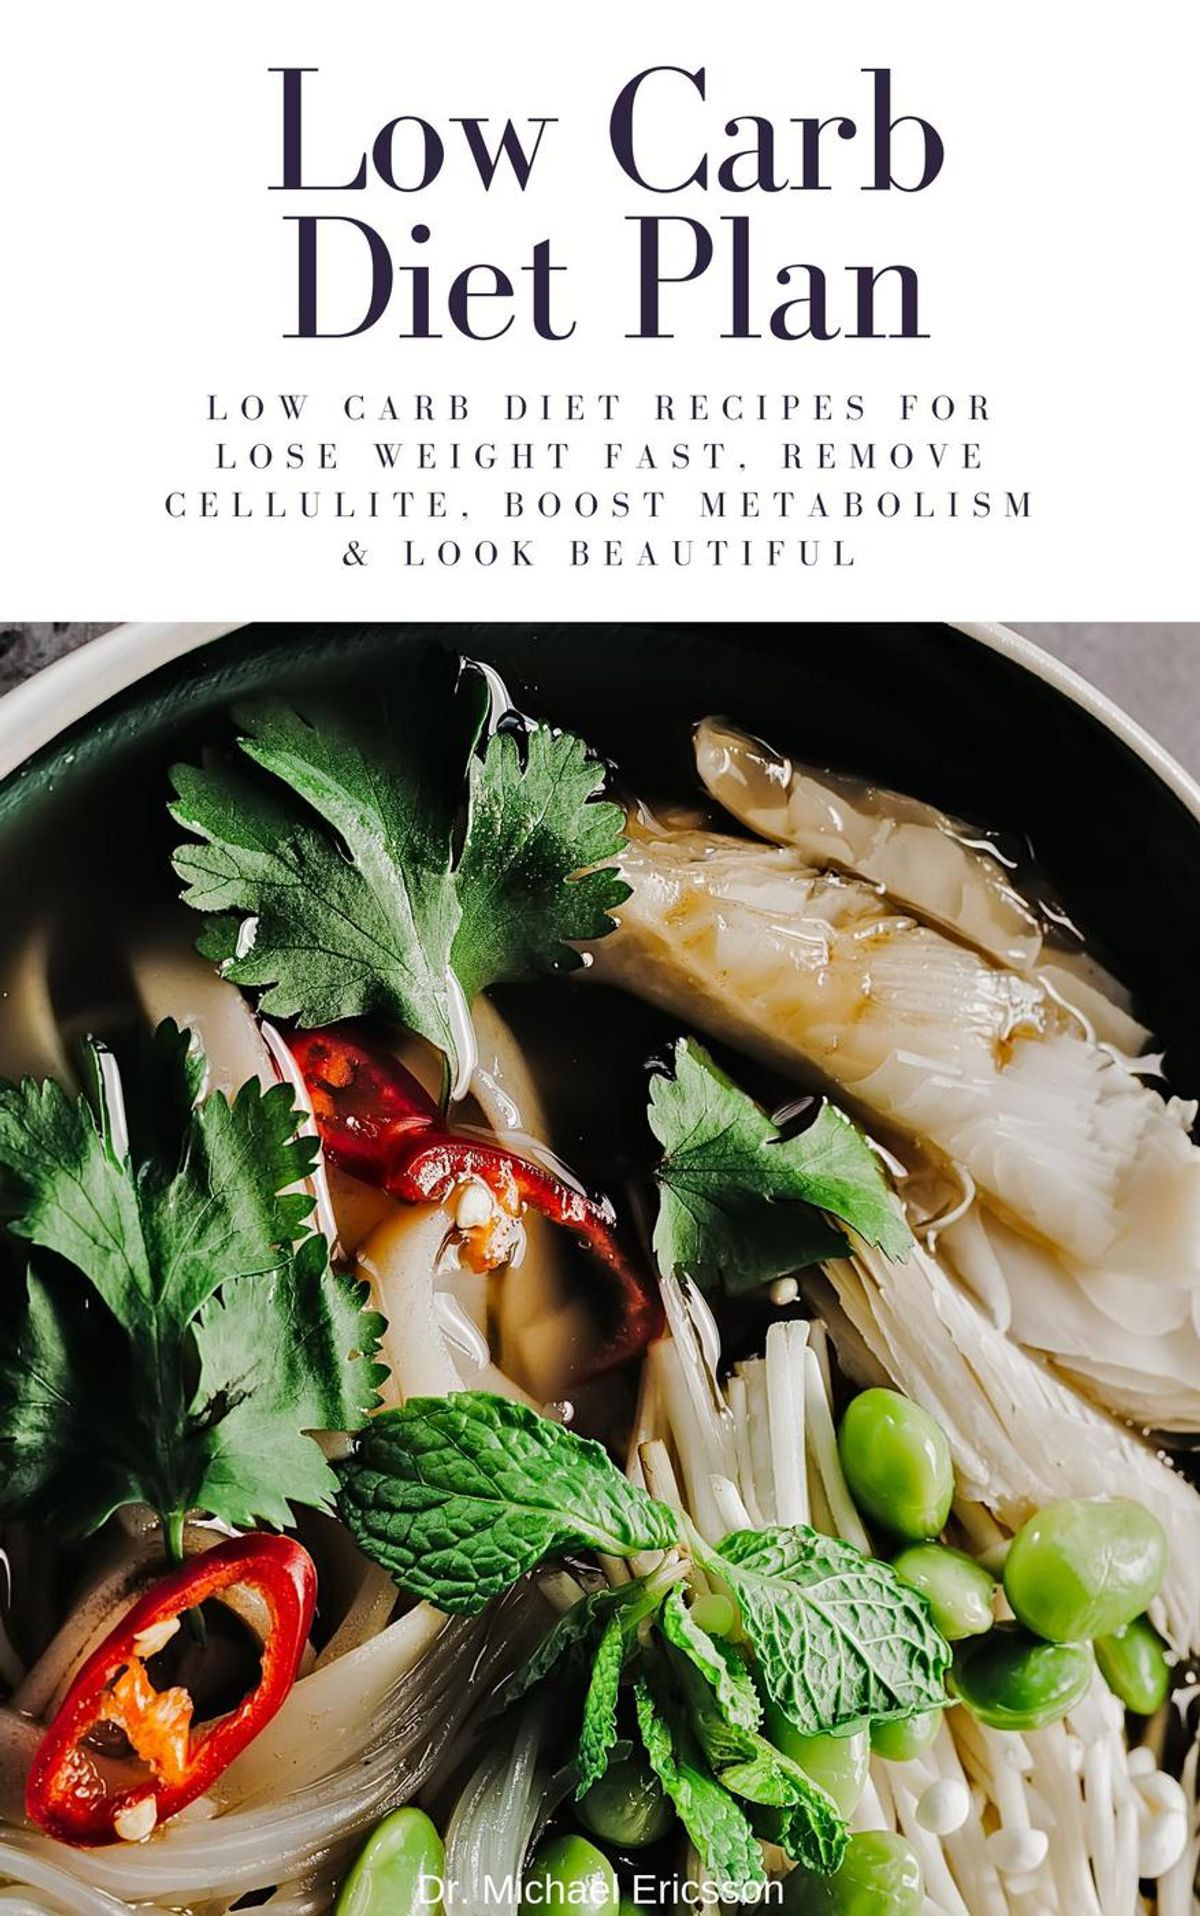 Low Carb Diet Recipes Losing Weight  Low Carb Diet Plan Low Carb Diet Recipes For Lose Weight